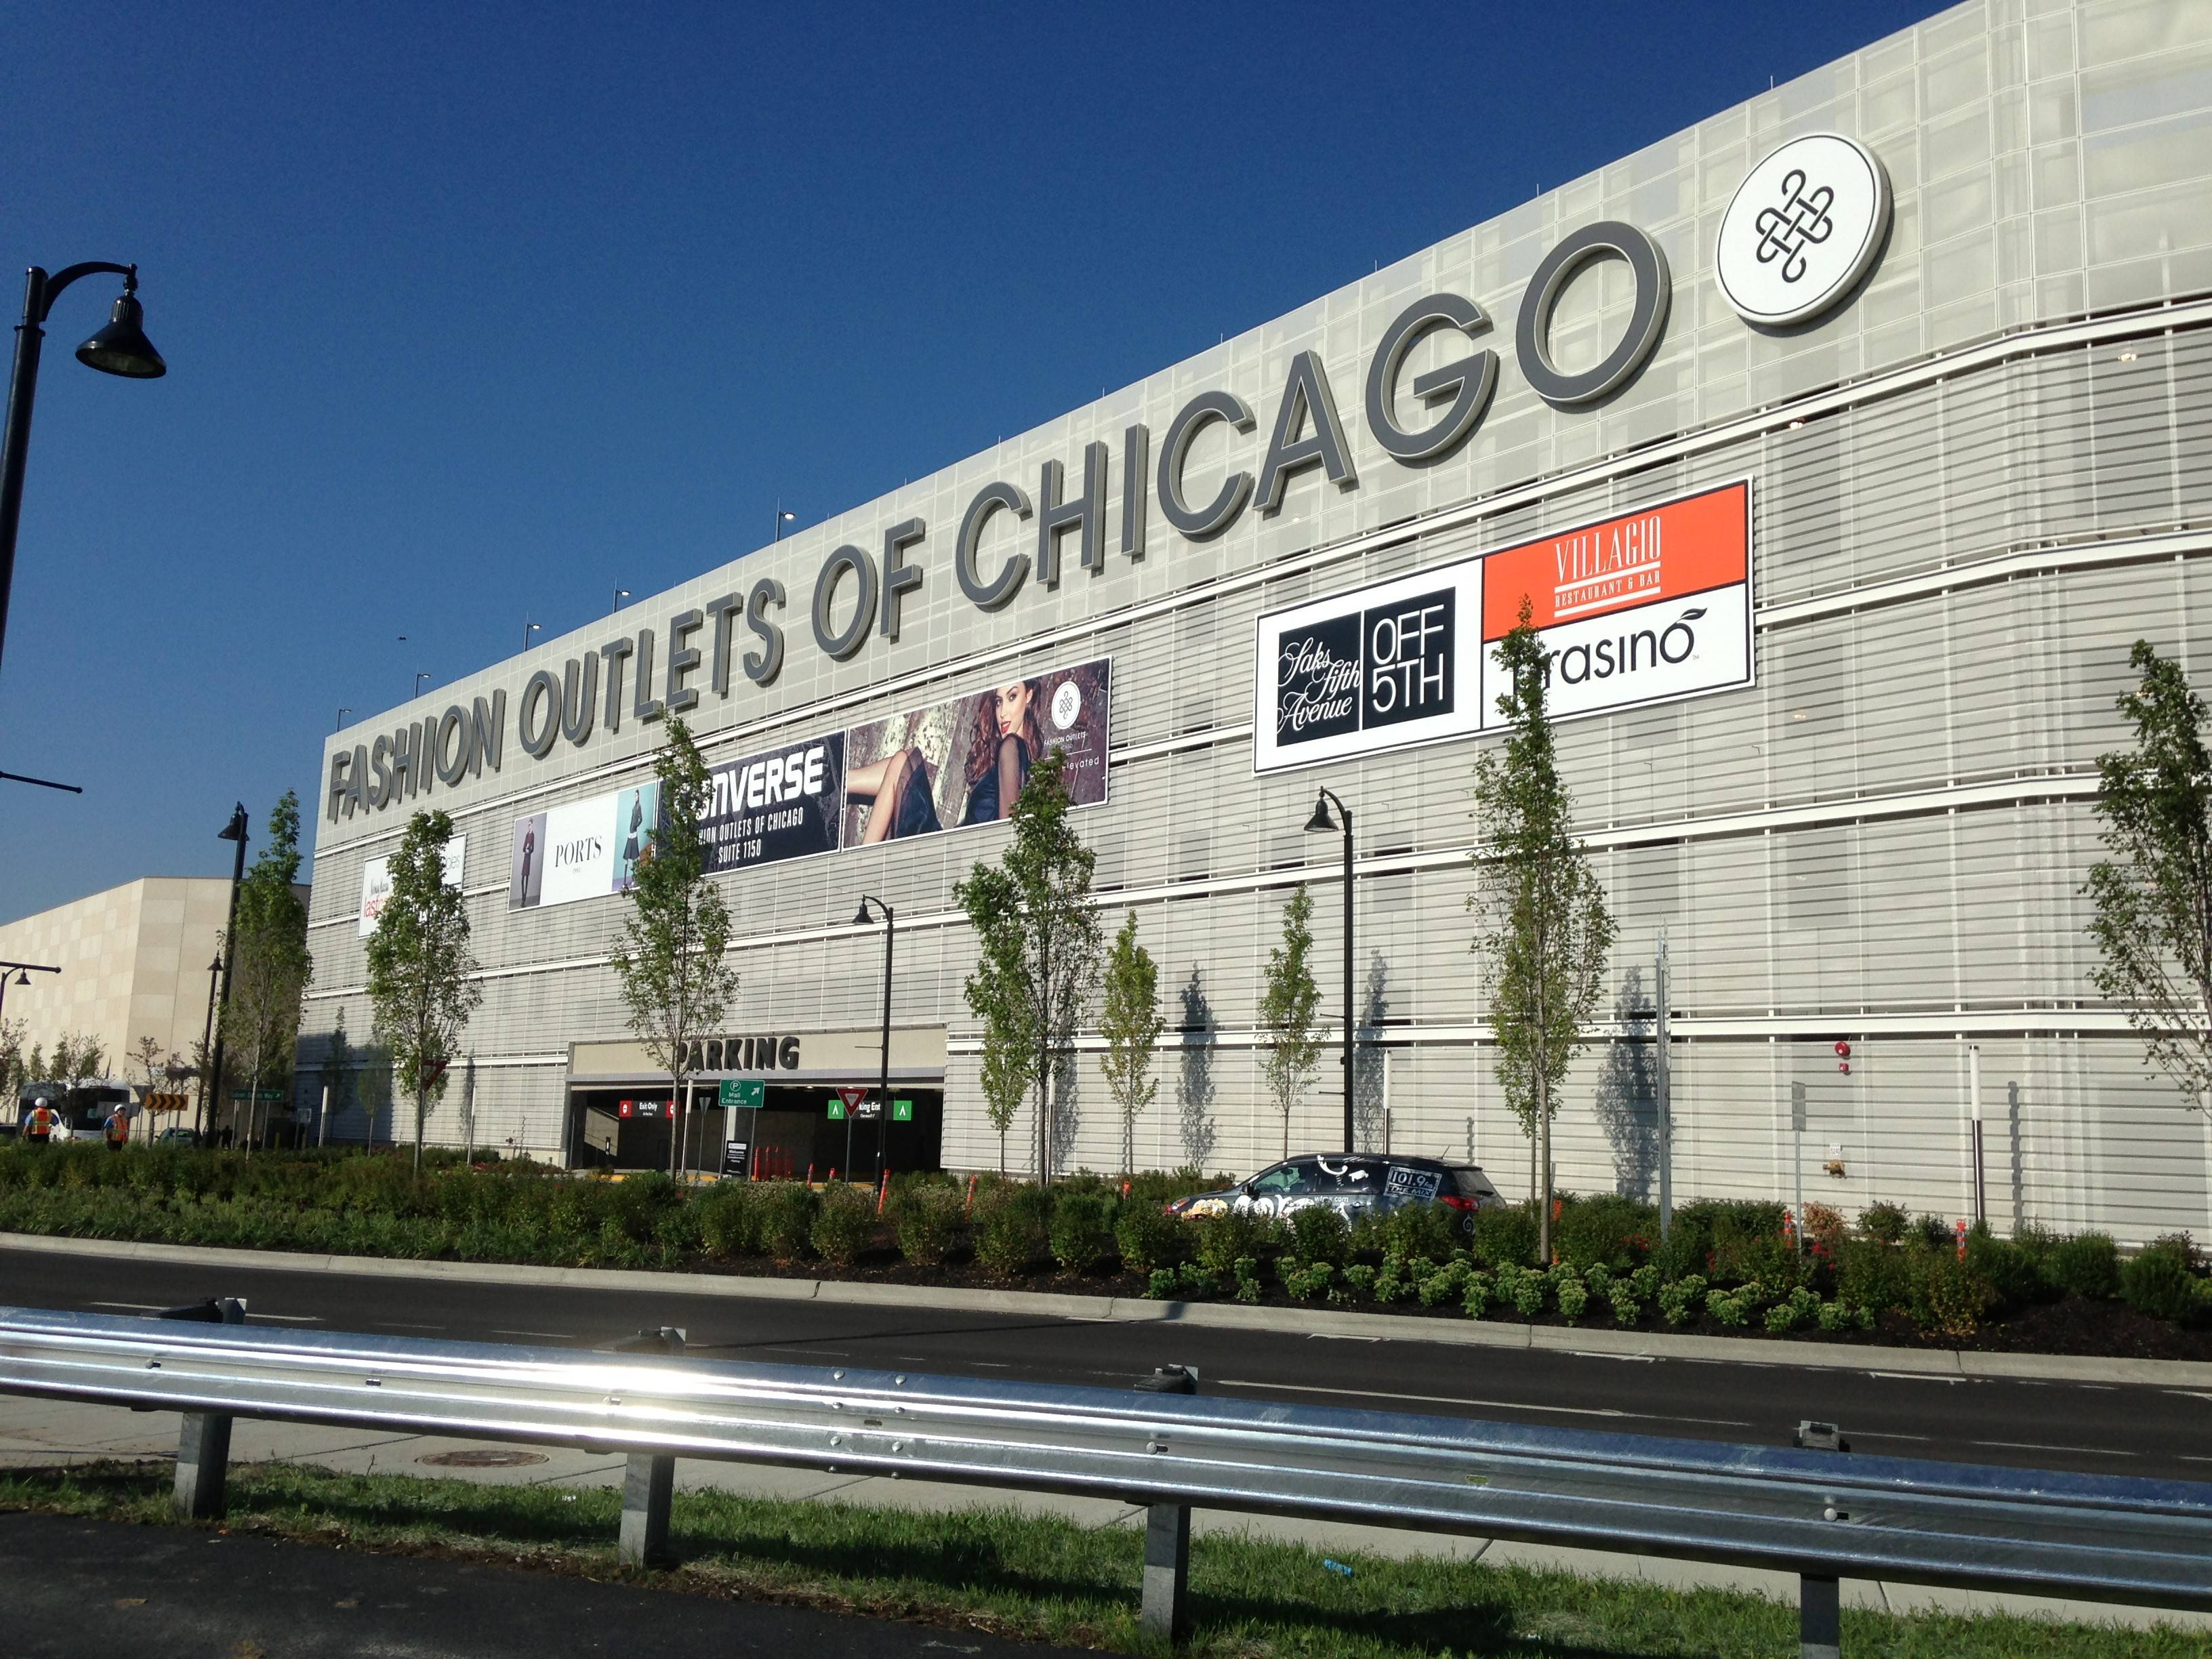 Fashion Outlets of Chicago Home 1